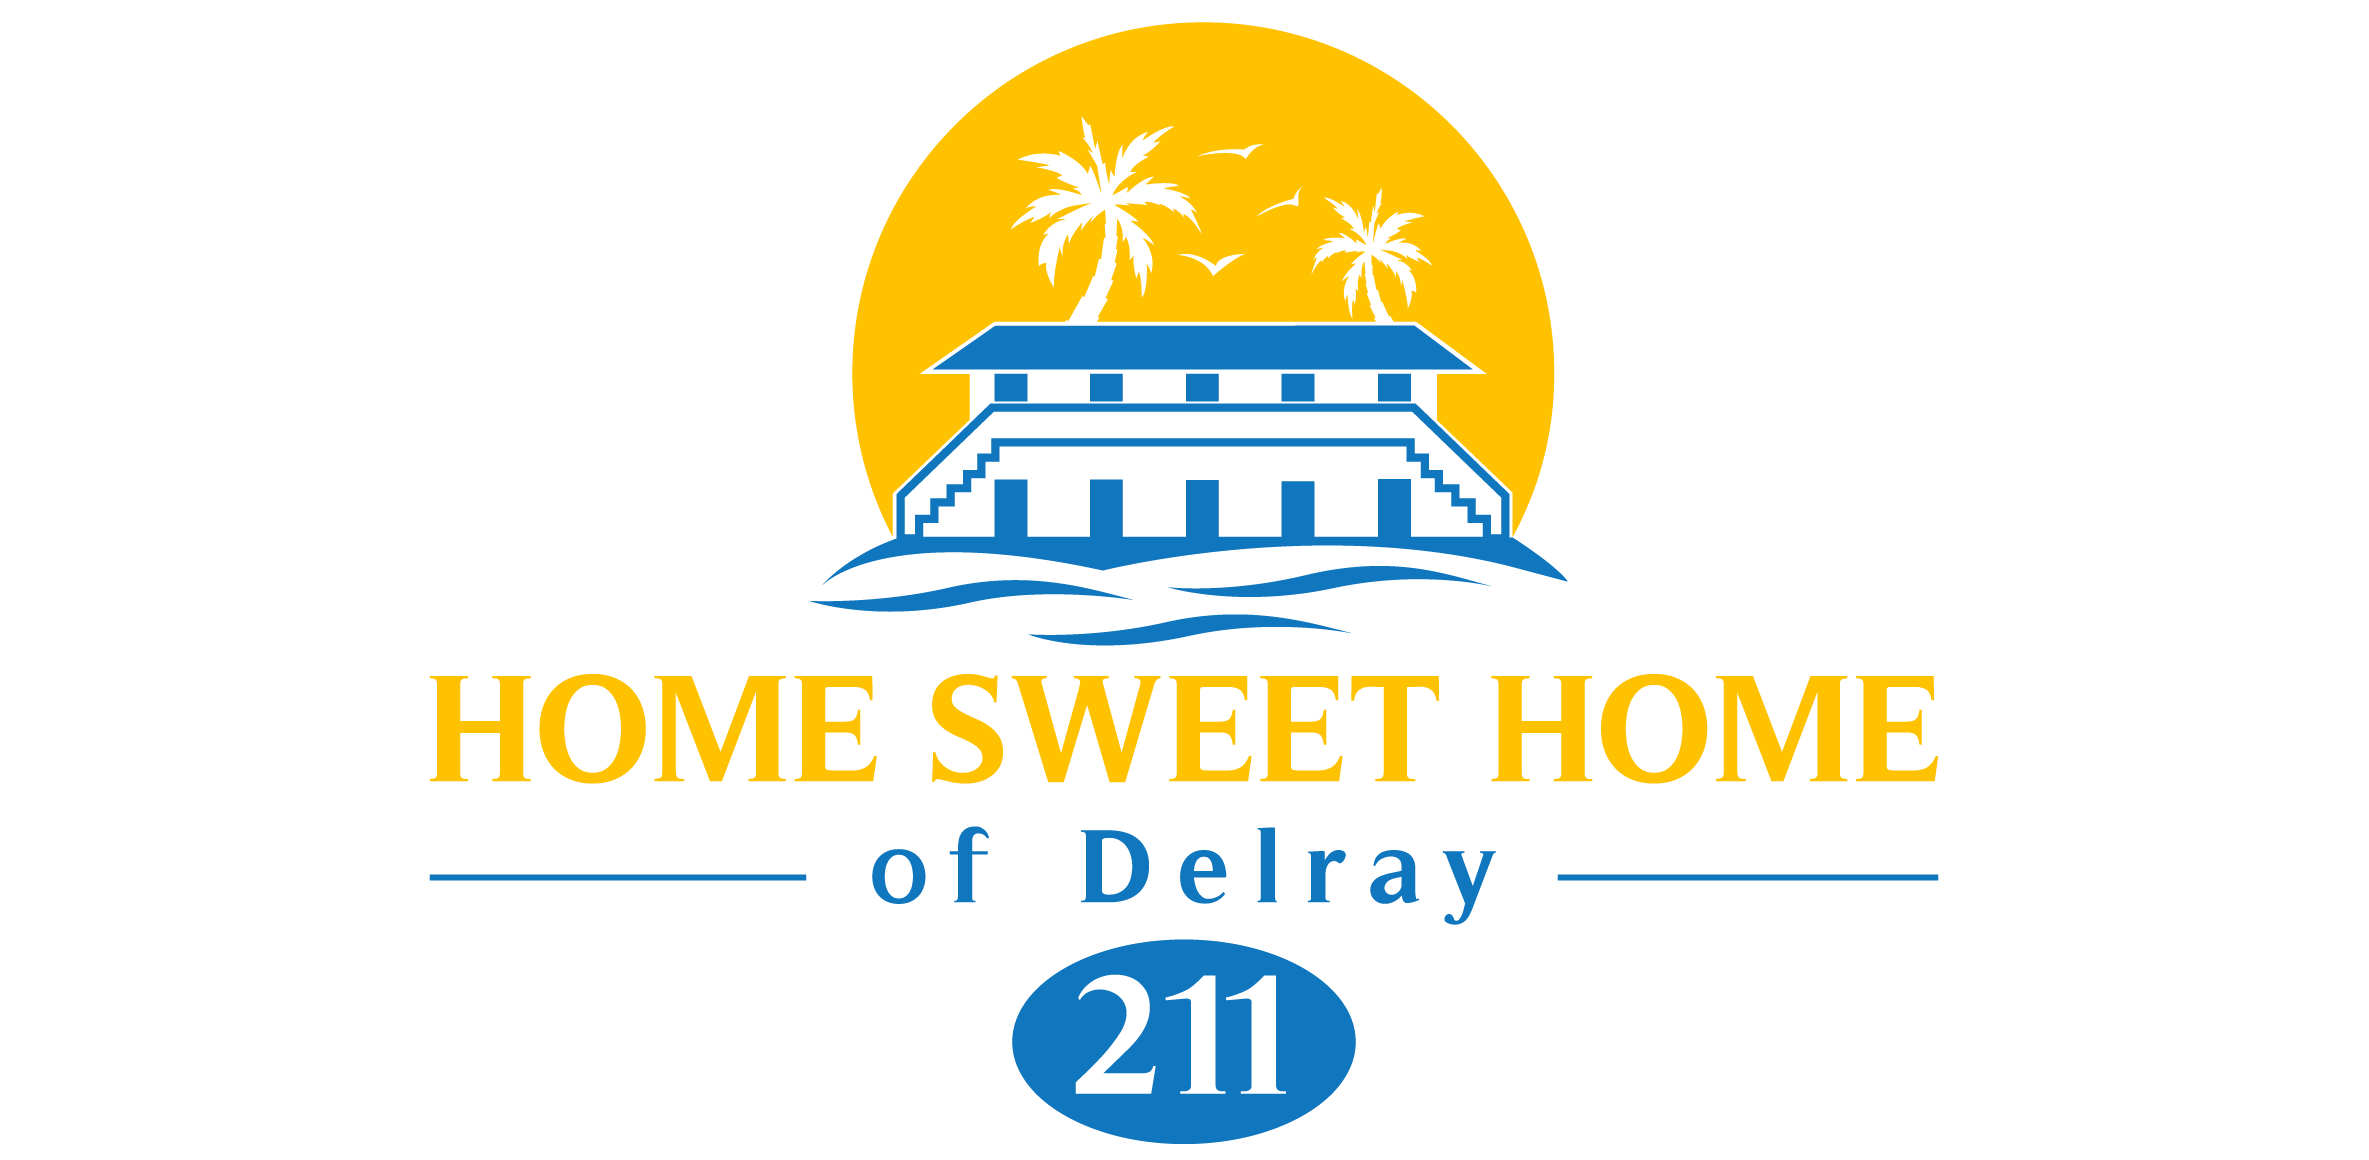 Home Sweet Home of Delray